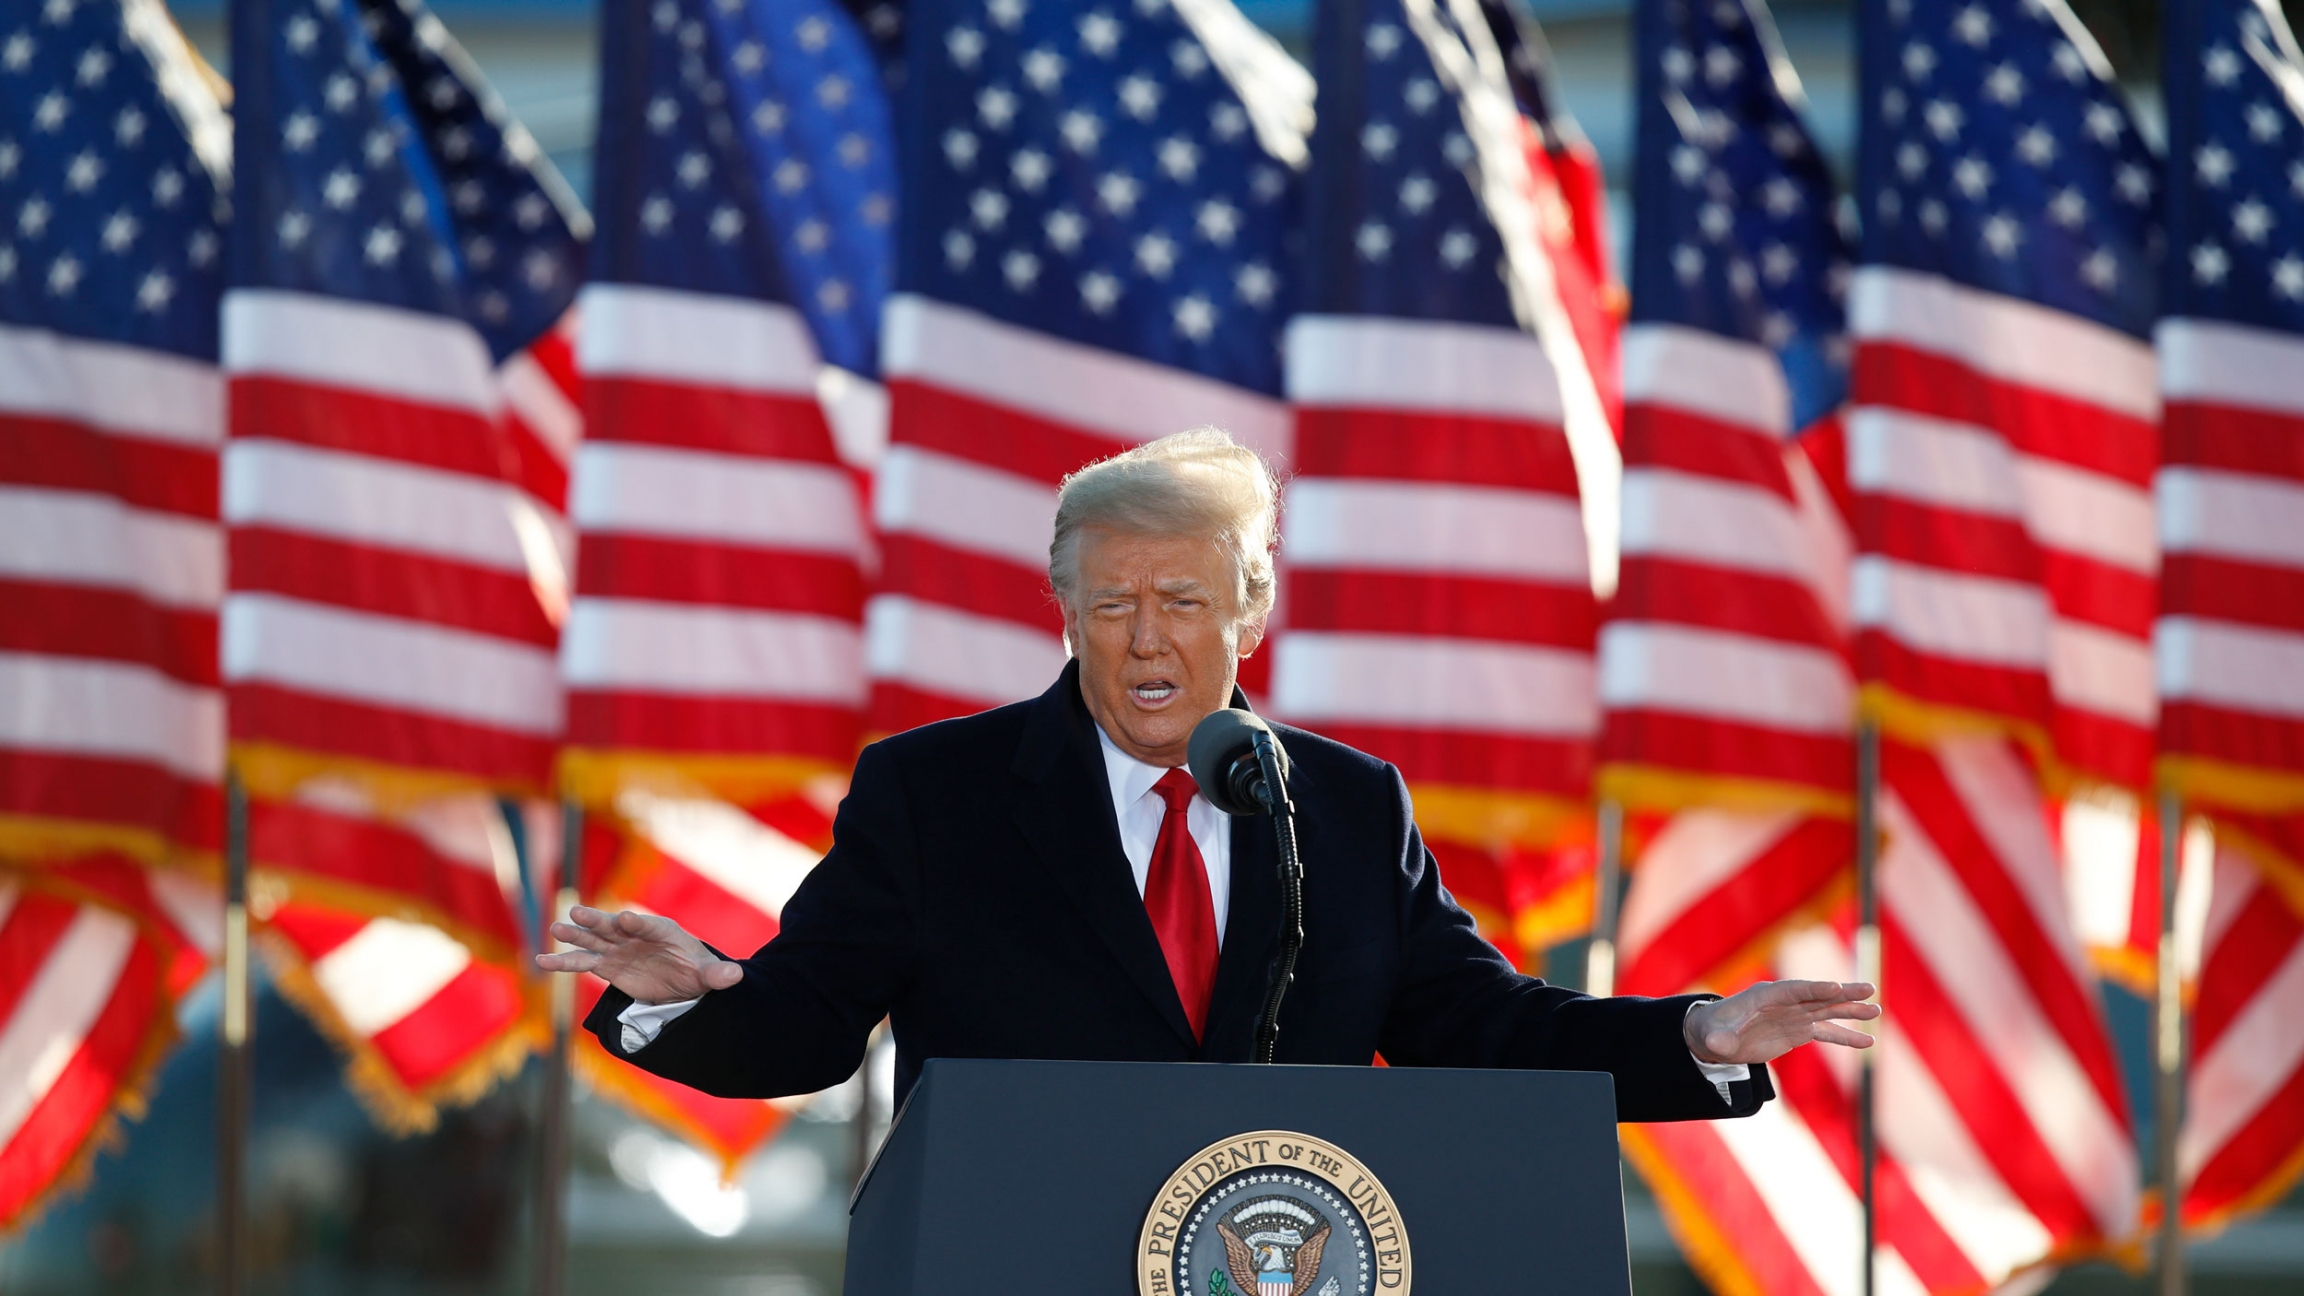 Donald Trump is shown wearing a dark suit overcoat and red tie with several US flags in the background.